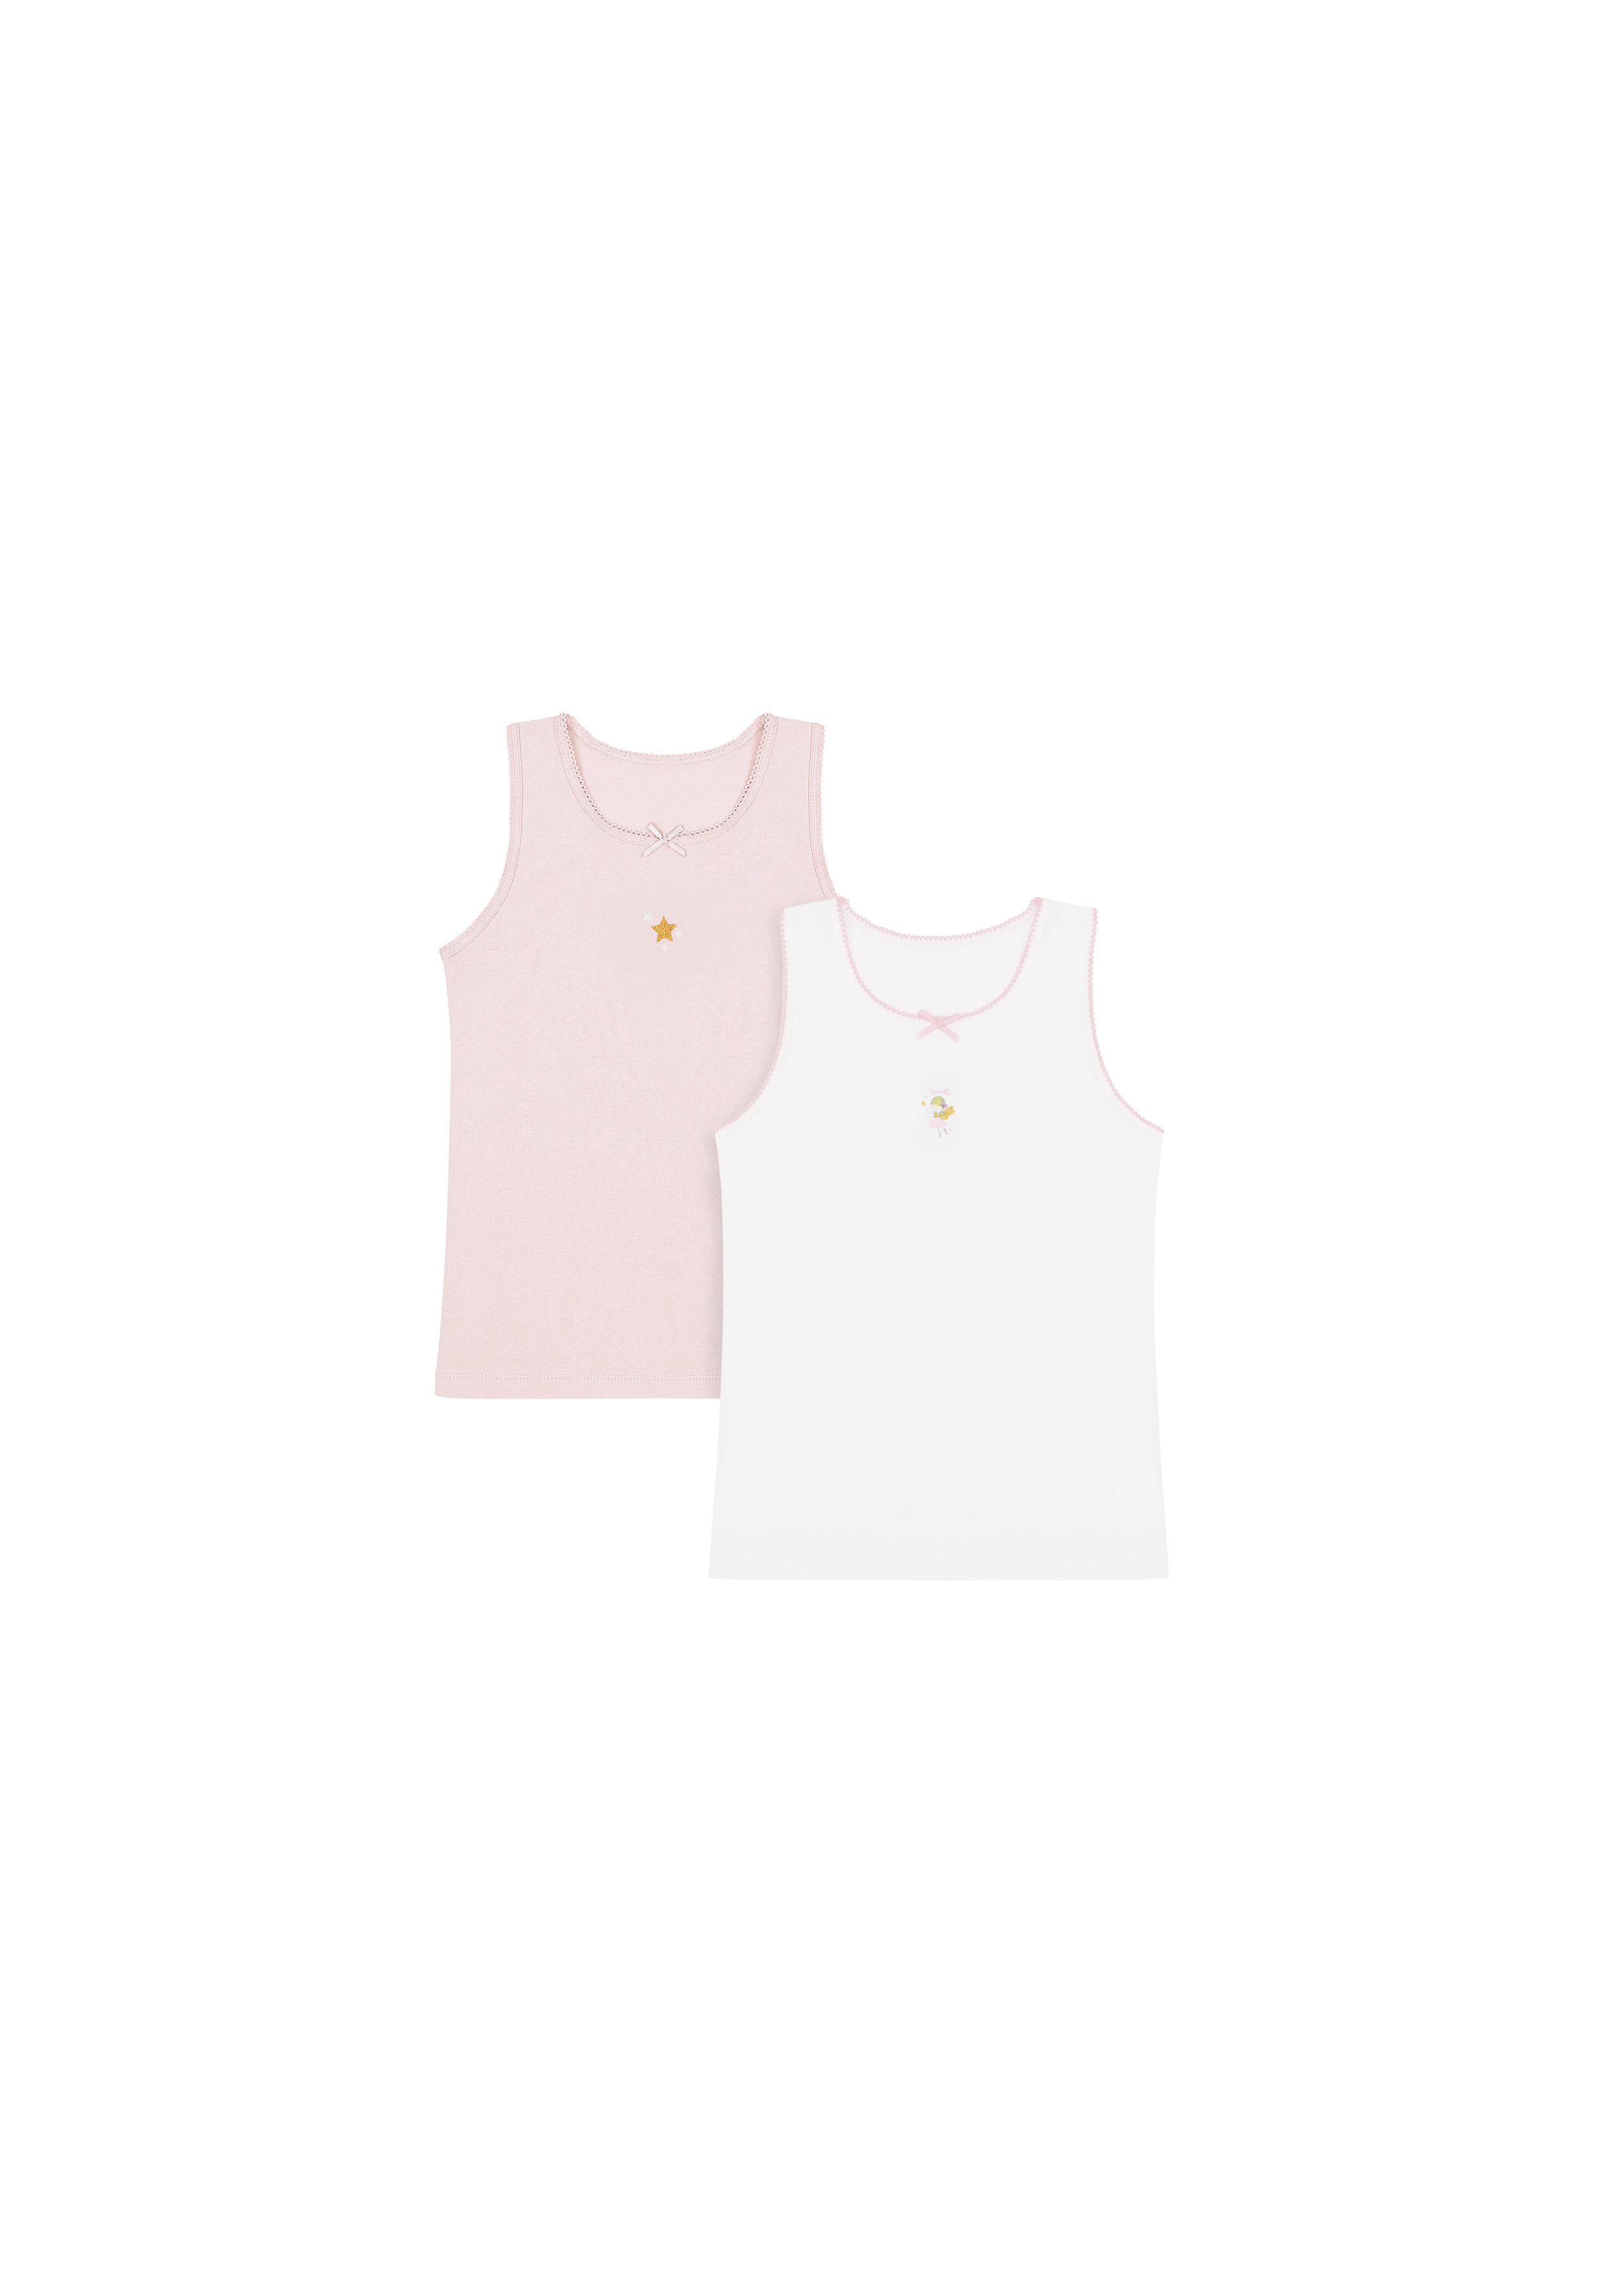 Mothercare | Girls Sleeveless Vest Fairy Sparkle Print - Pack Of 2 - Pink White